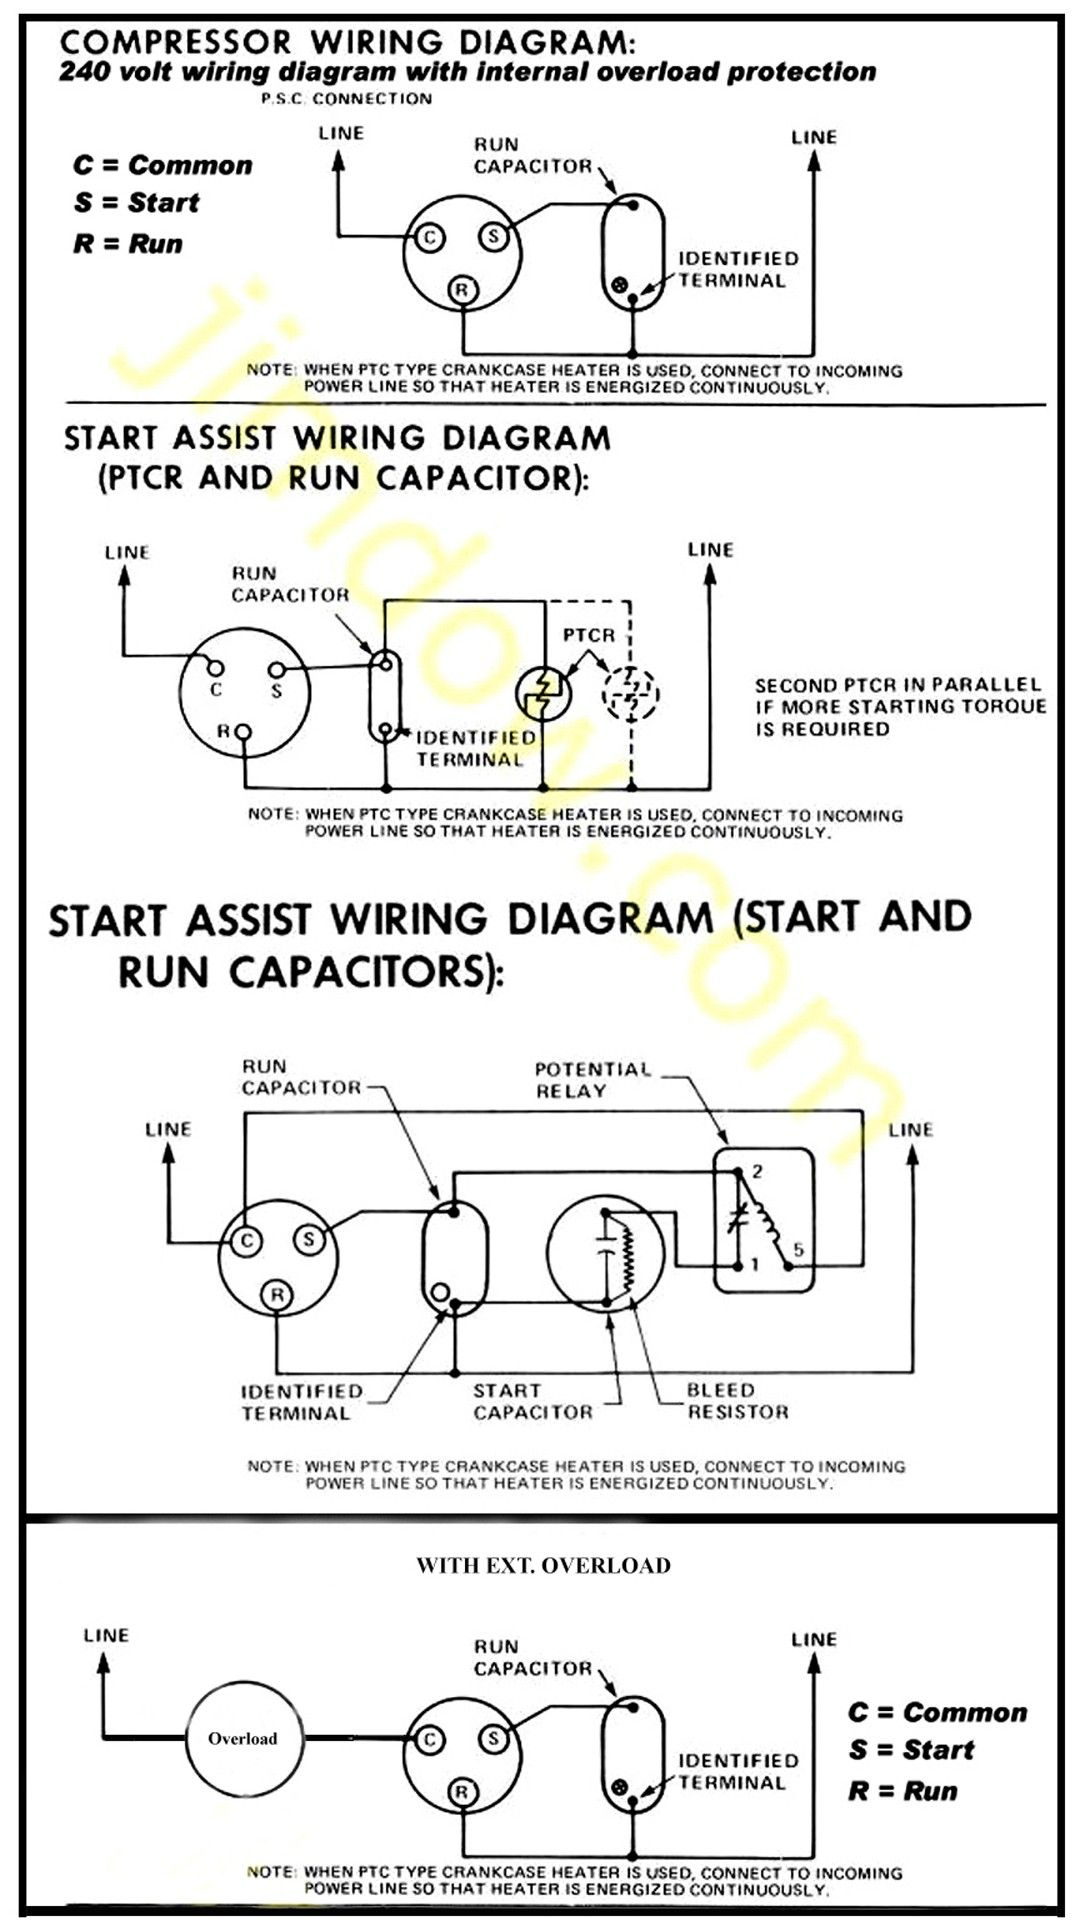 Unique Wiring Diagram Ac Split Mitsubishi Diagram Diagramtemplate Diagra Refrigeration And Air Conditioning Hvac Air Conditioning Air Conditioner Compressor